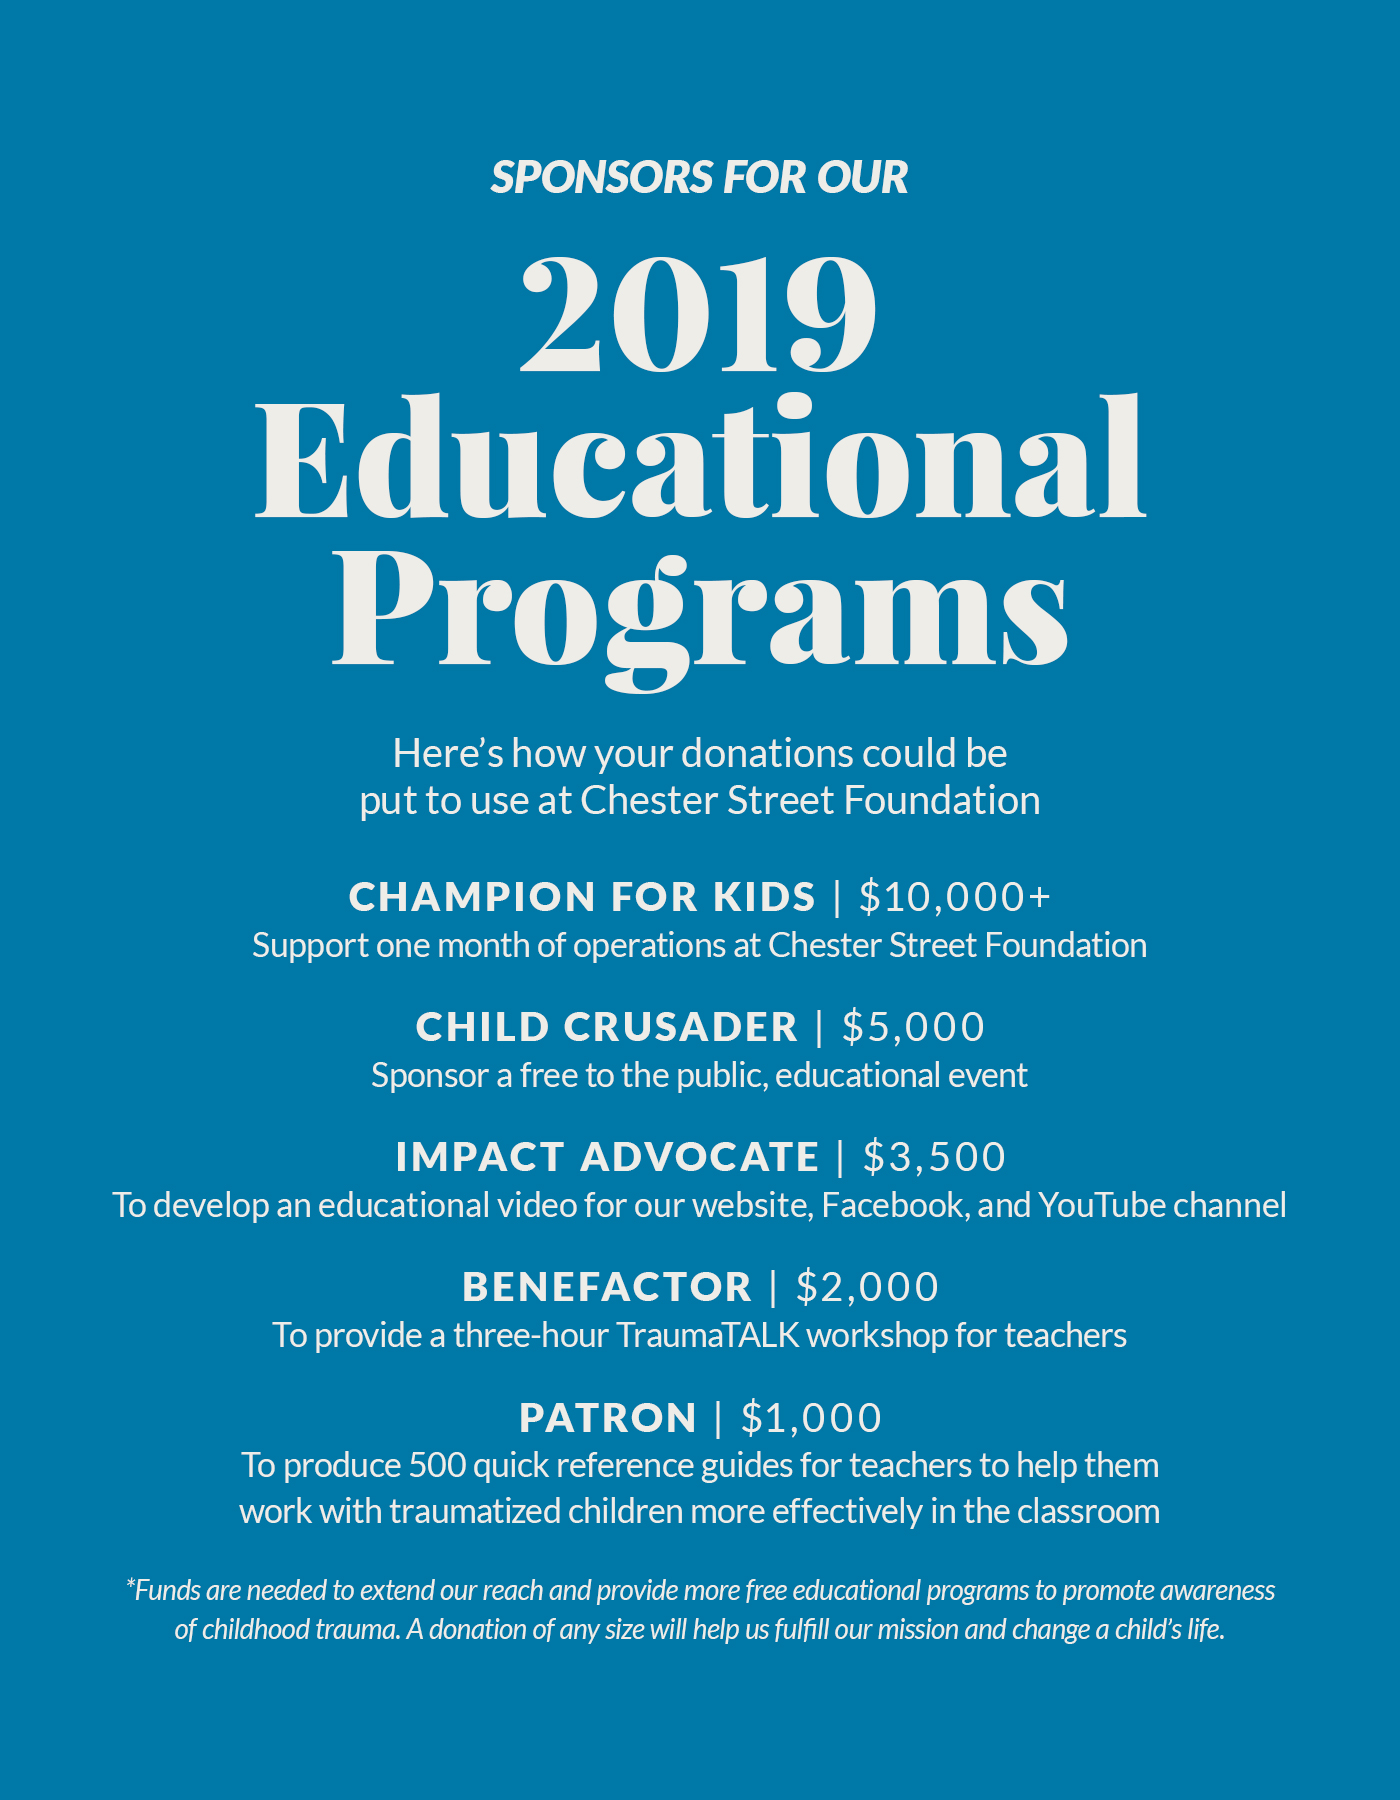 2019 Educational Programs